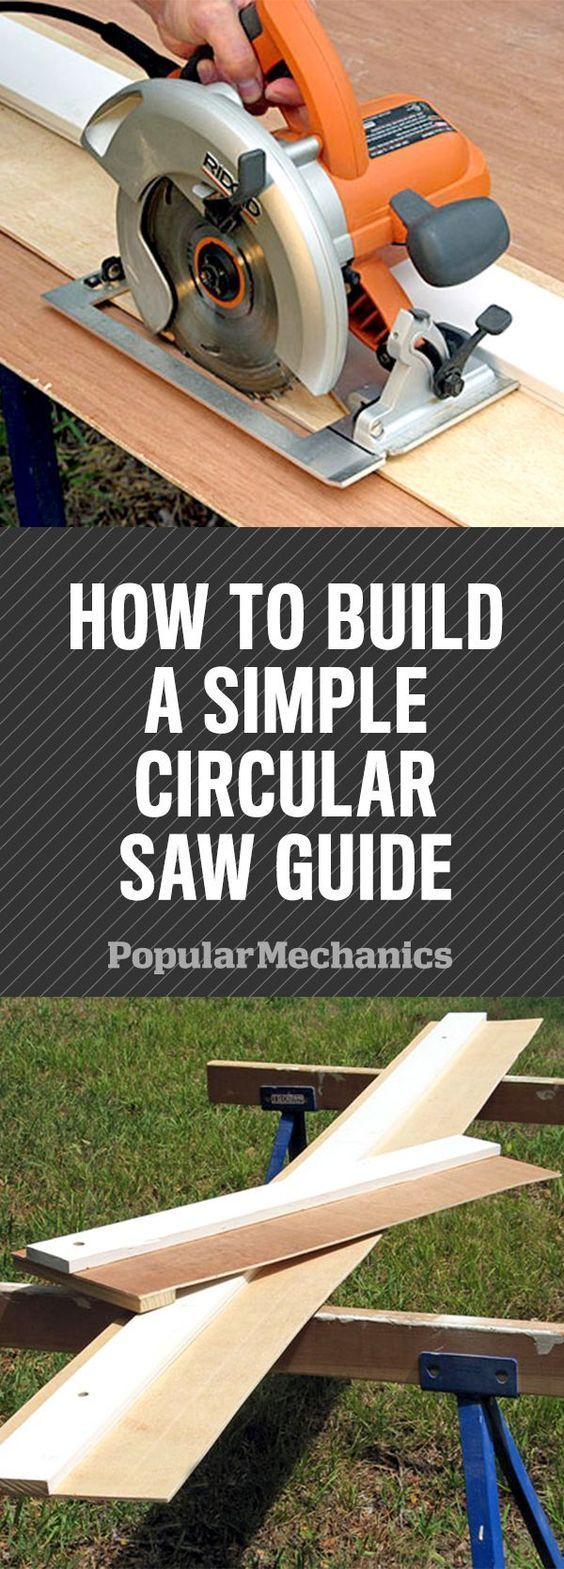 How To Build A Simple Circular Saw Guide For Straighter Cuts. Woodworking  GuideWoodworking Measuring ToolsEssential ...